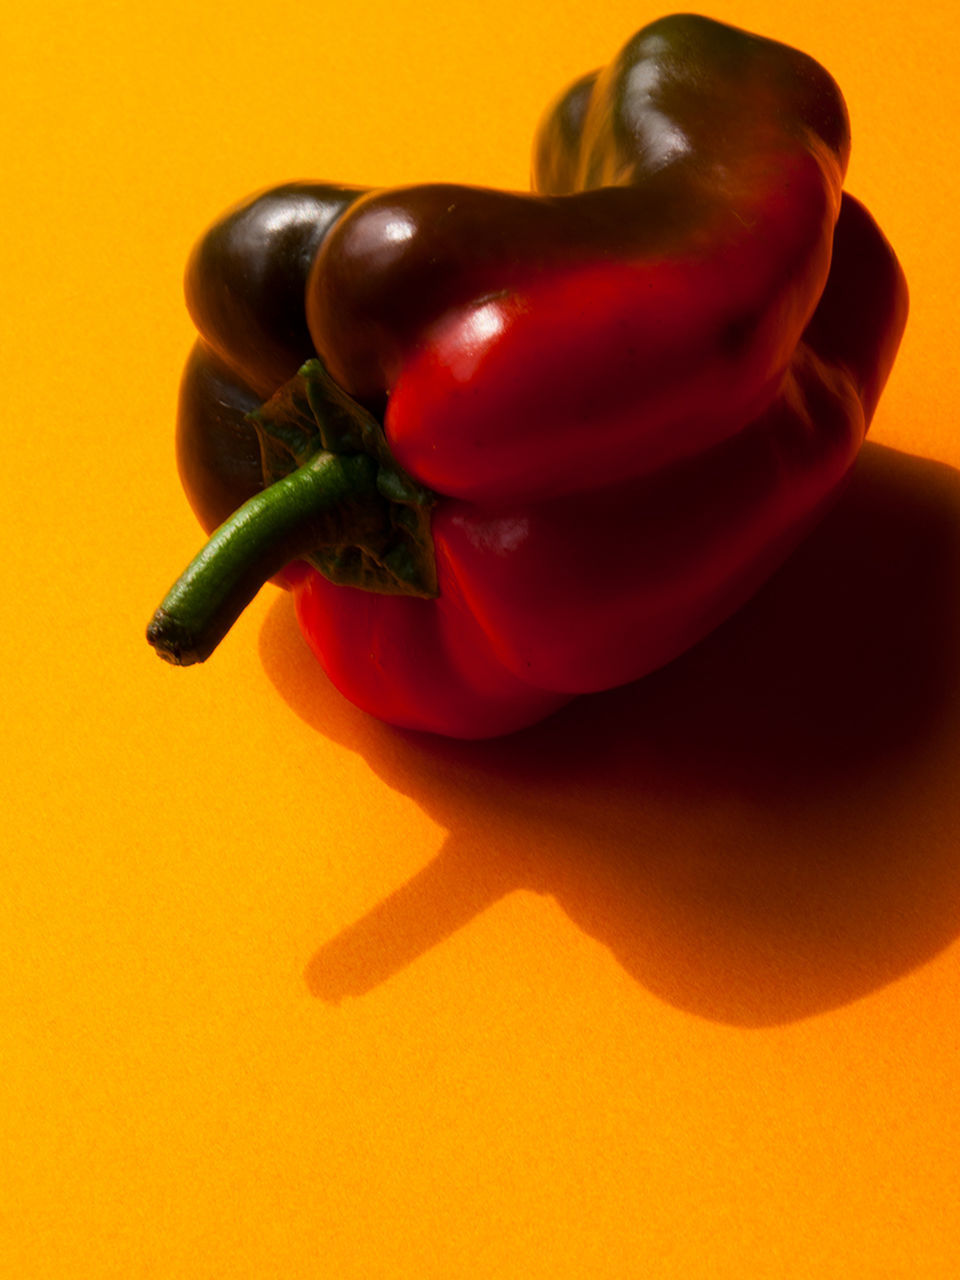 food and drink, vegetable, still life, studio shot, bell pepper, food, healthy eating, no people, red bell pepper, freshness, pepper - vegetable, close-up, raw food, spice, table, indoors, shadow, day